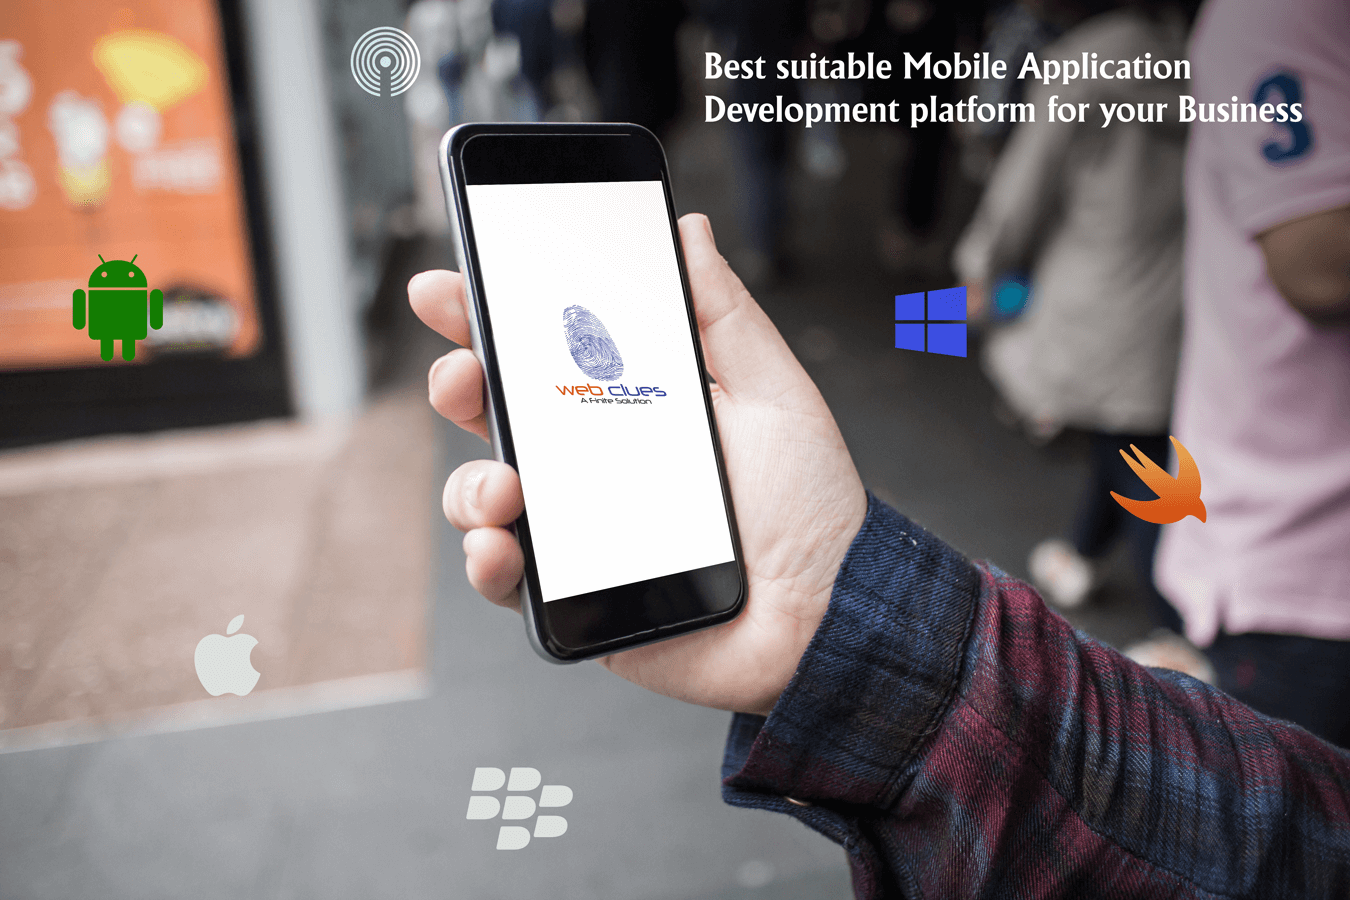 Mobile App Development Platform Selection